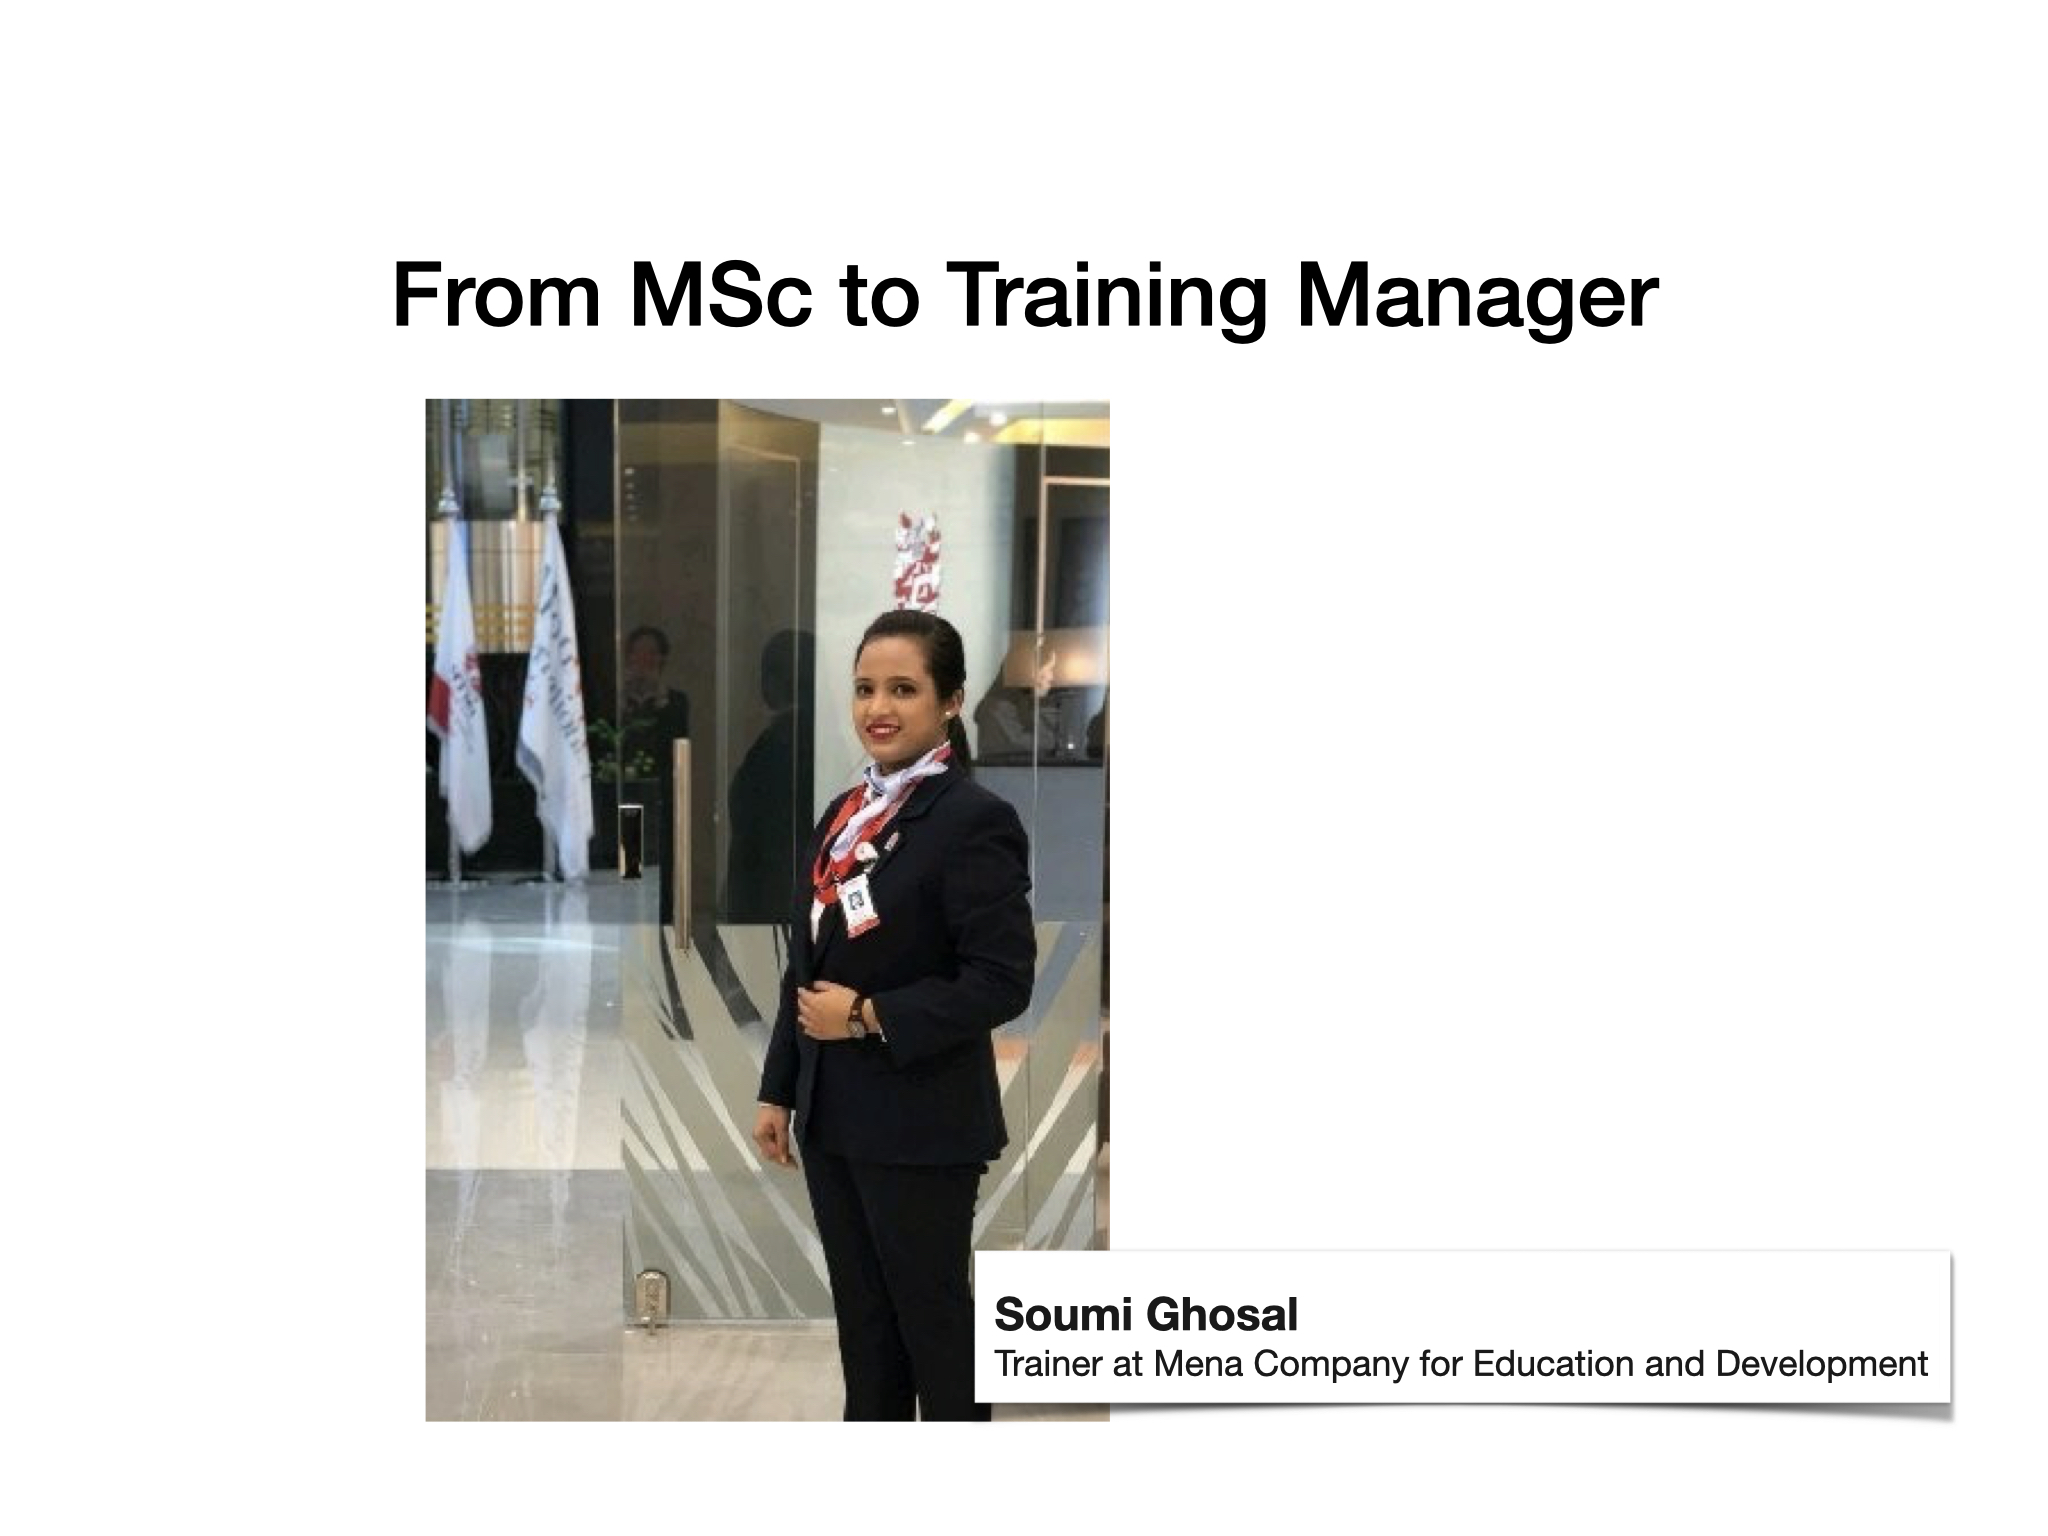 Soumi Ghosal – Trainer at Mena Company for Education and Development